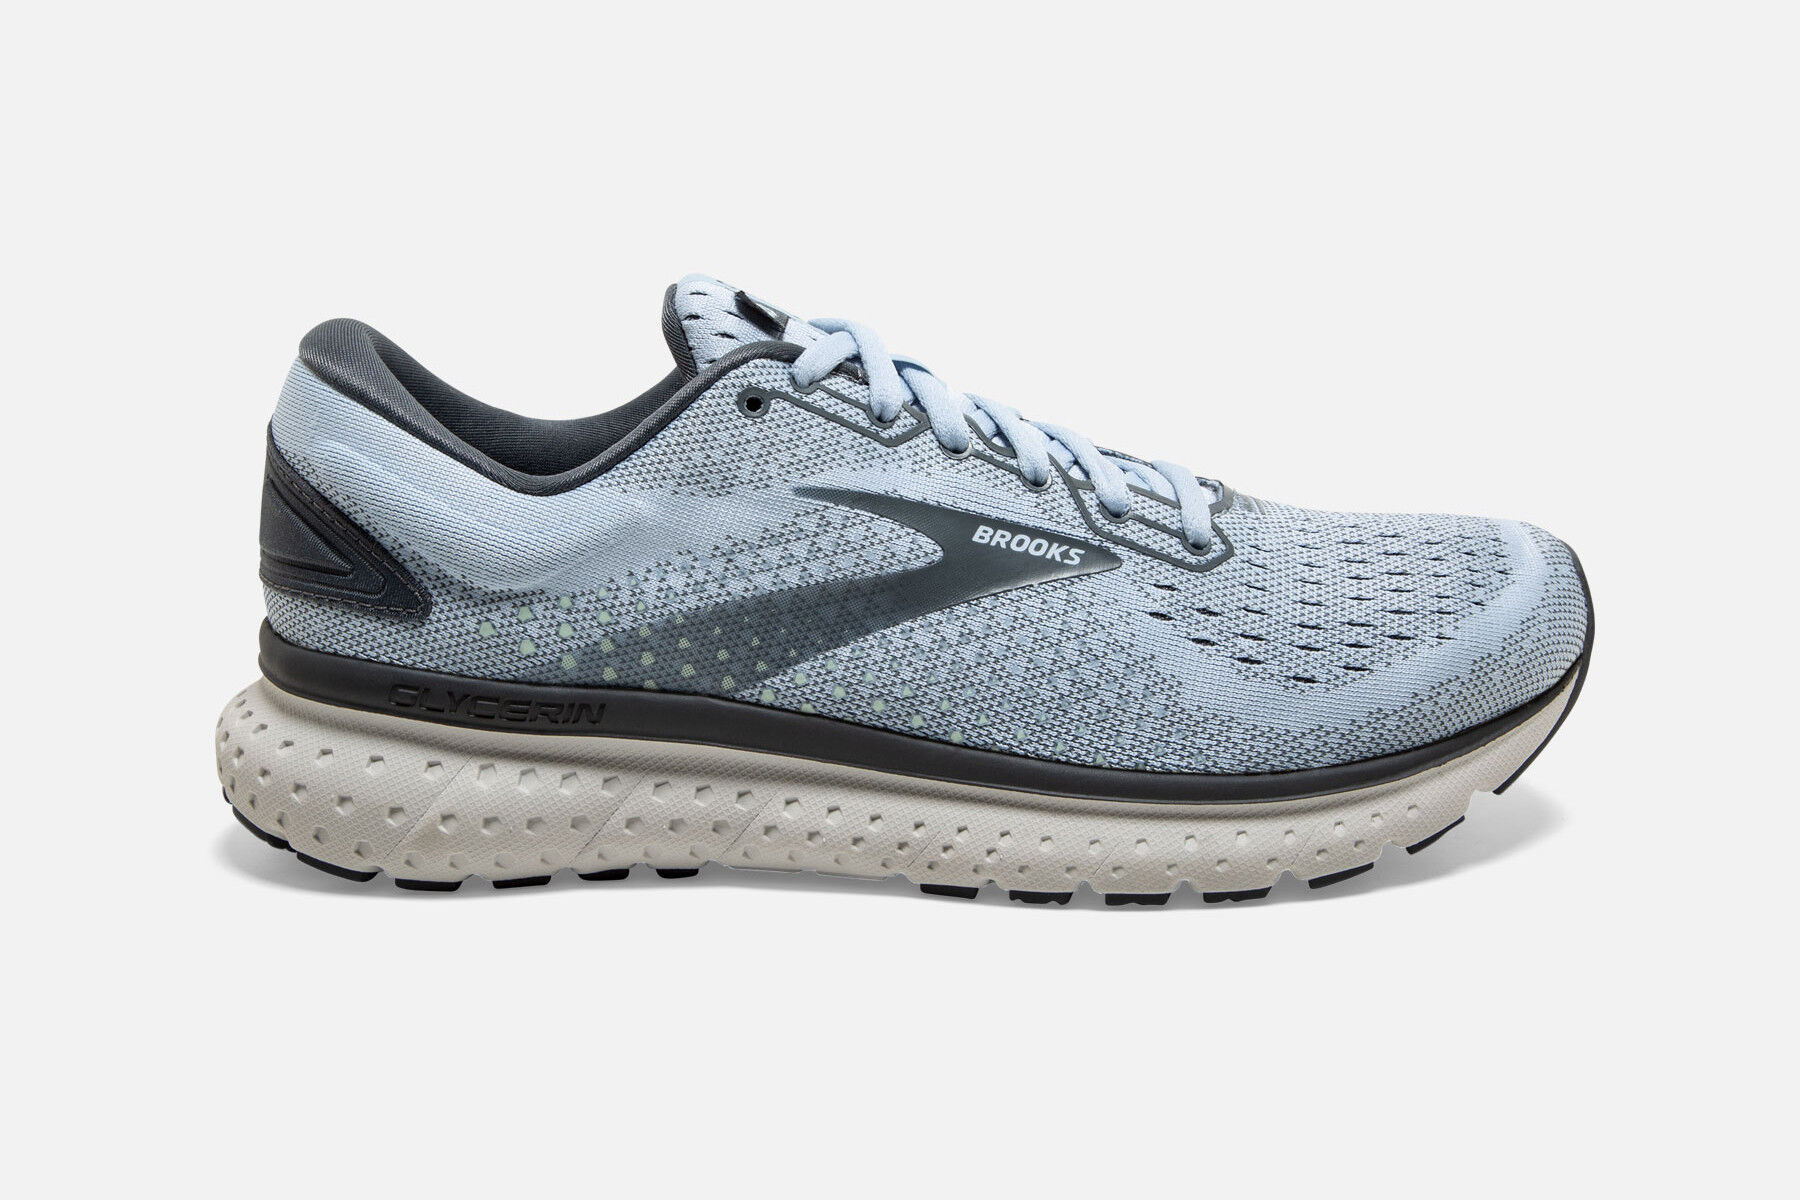 brooks shoes sale